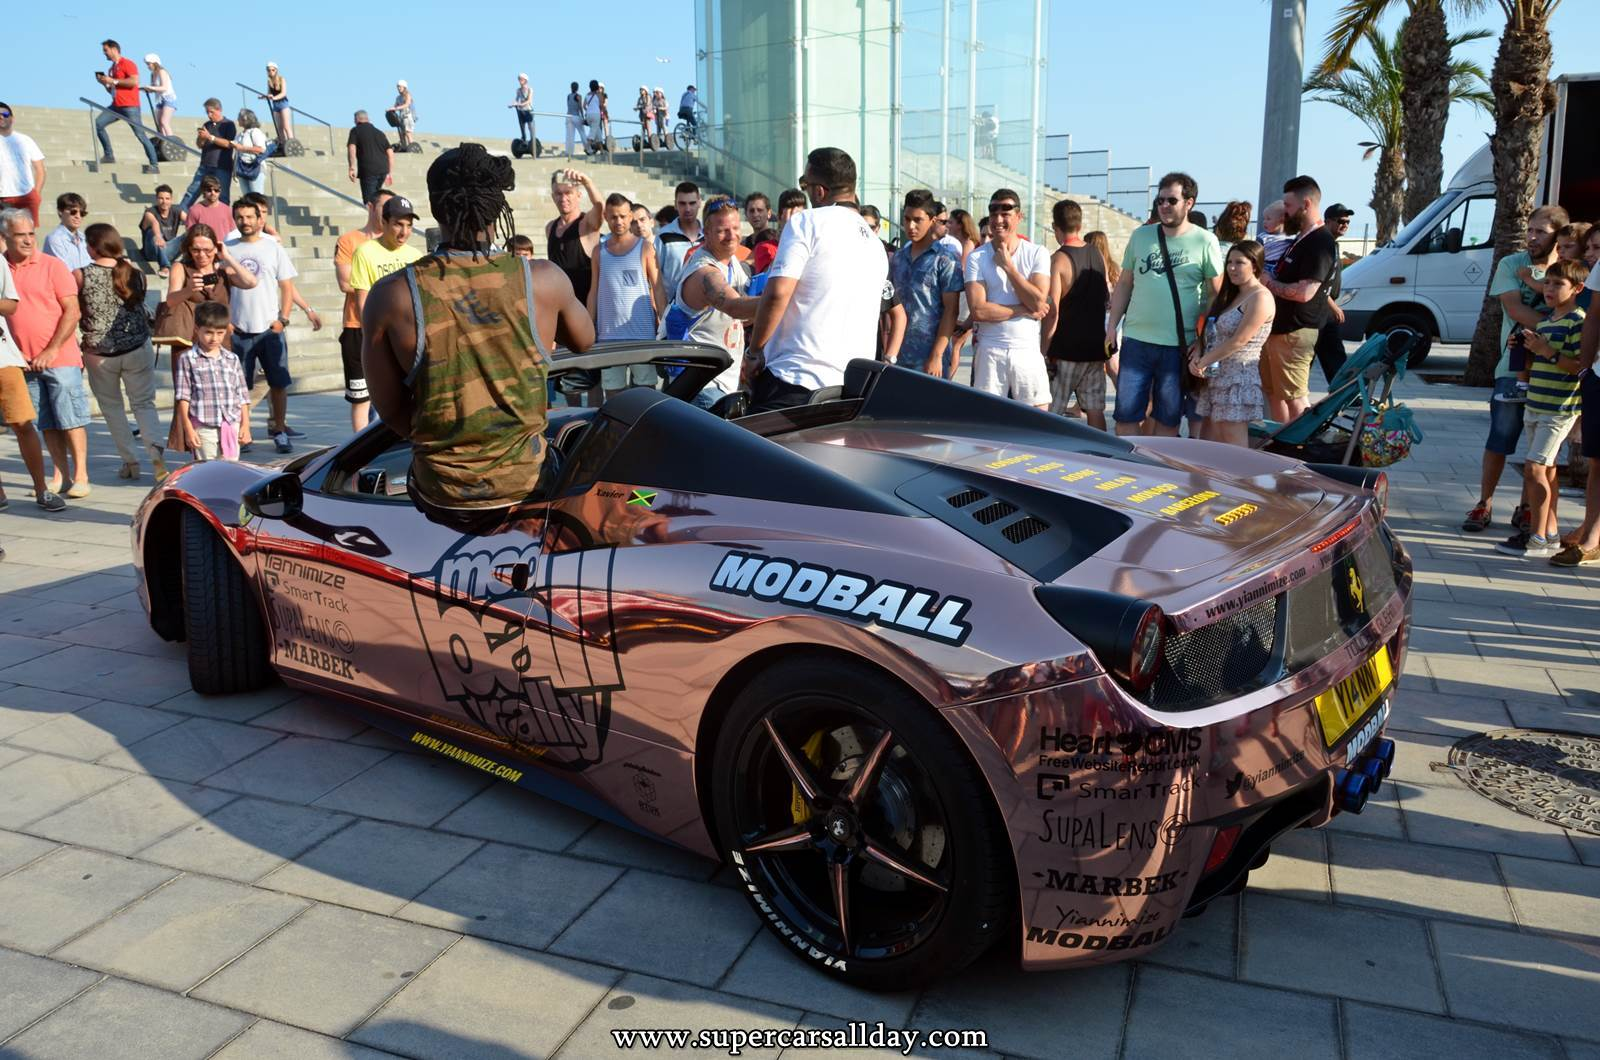 Modball Rally 2015 - Barcelona - Supercars All Day [Exotic